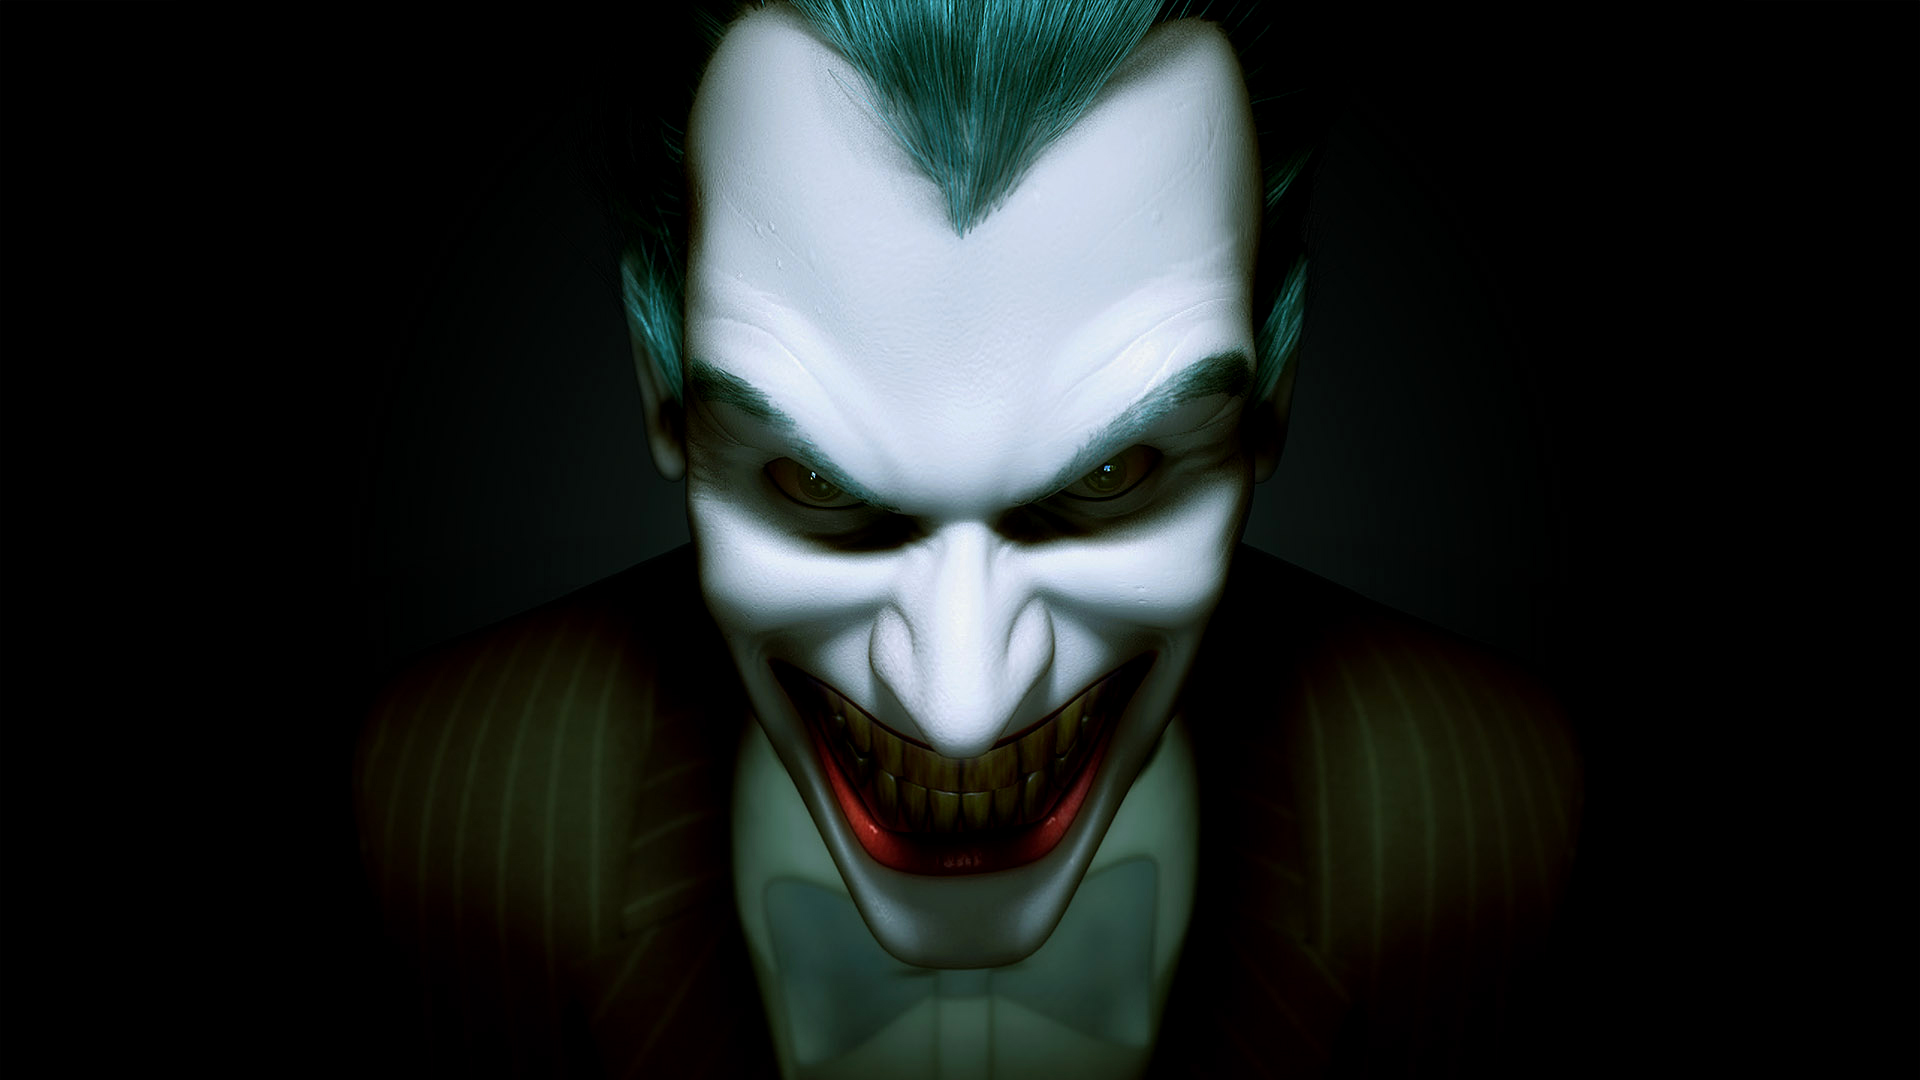 Joker wallpaper 1920x1080 1   hebusorg   High Definition Wallpapers 1920x1080